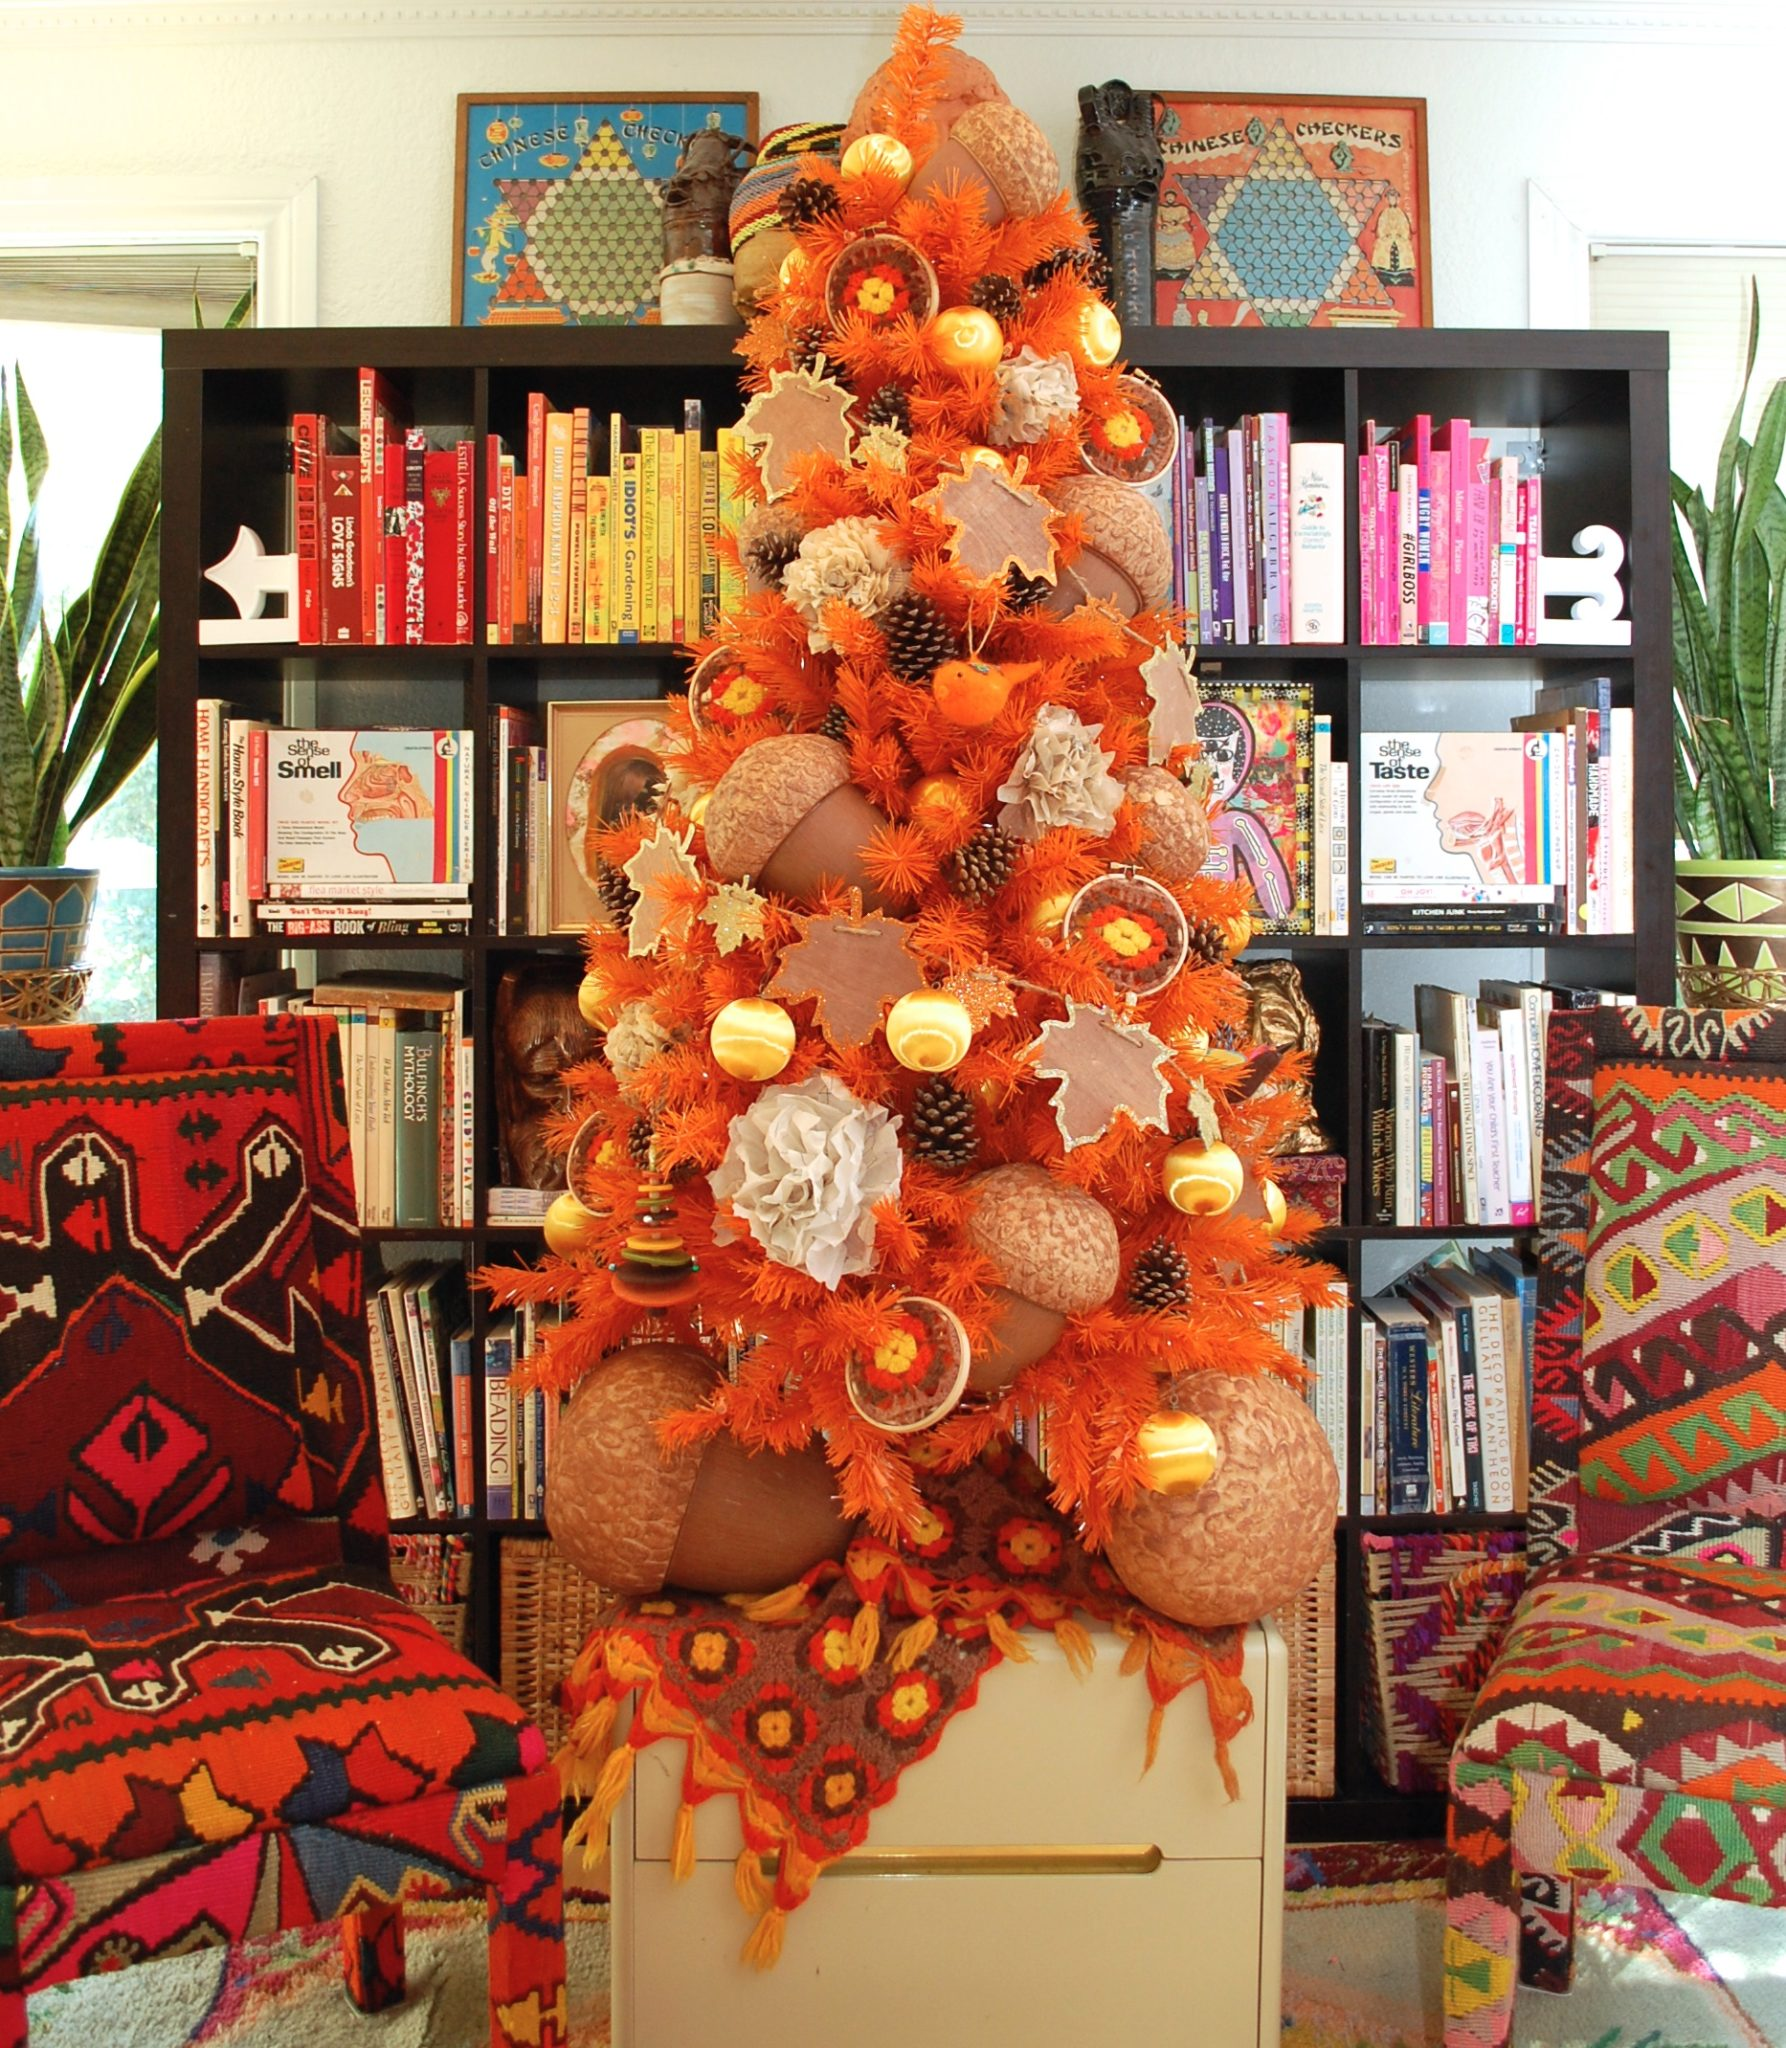 Proper Way To Decorate A Christmas Tree: Cut Up That Afghan, It's Time To Decorate An Orange